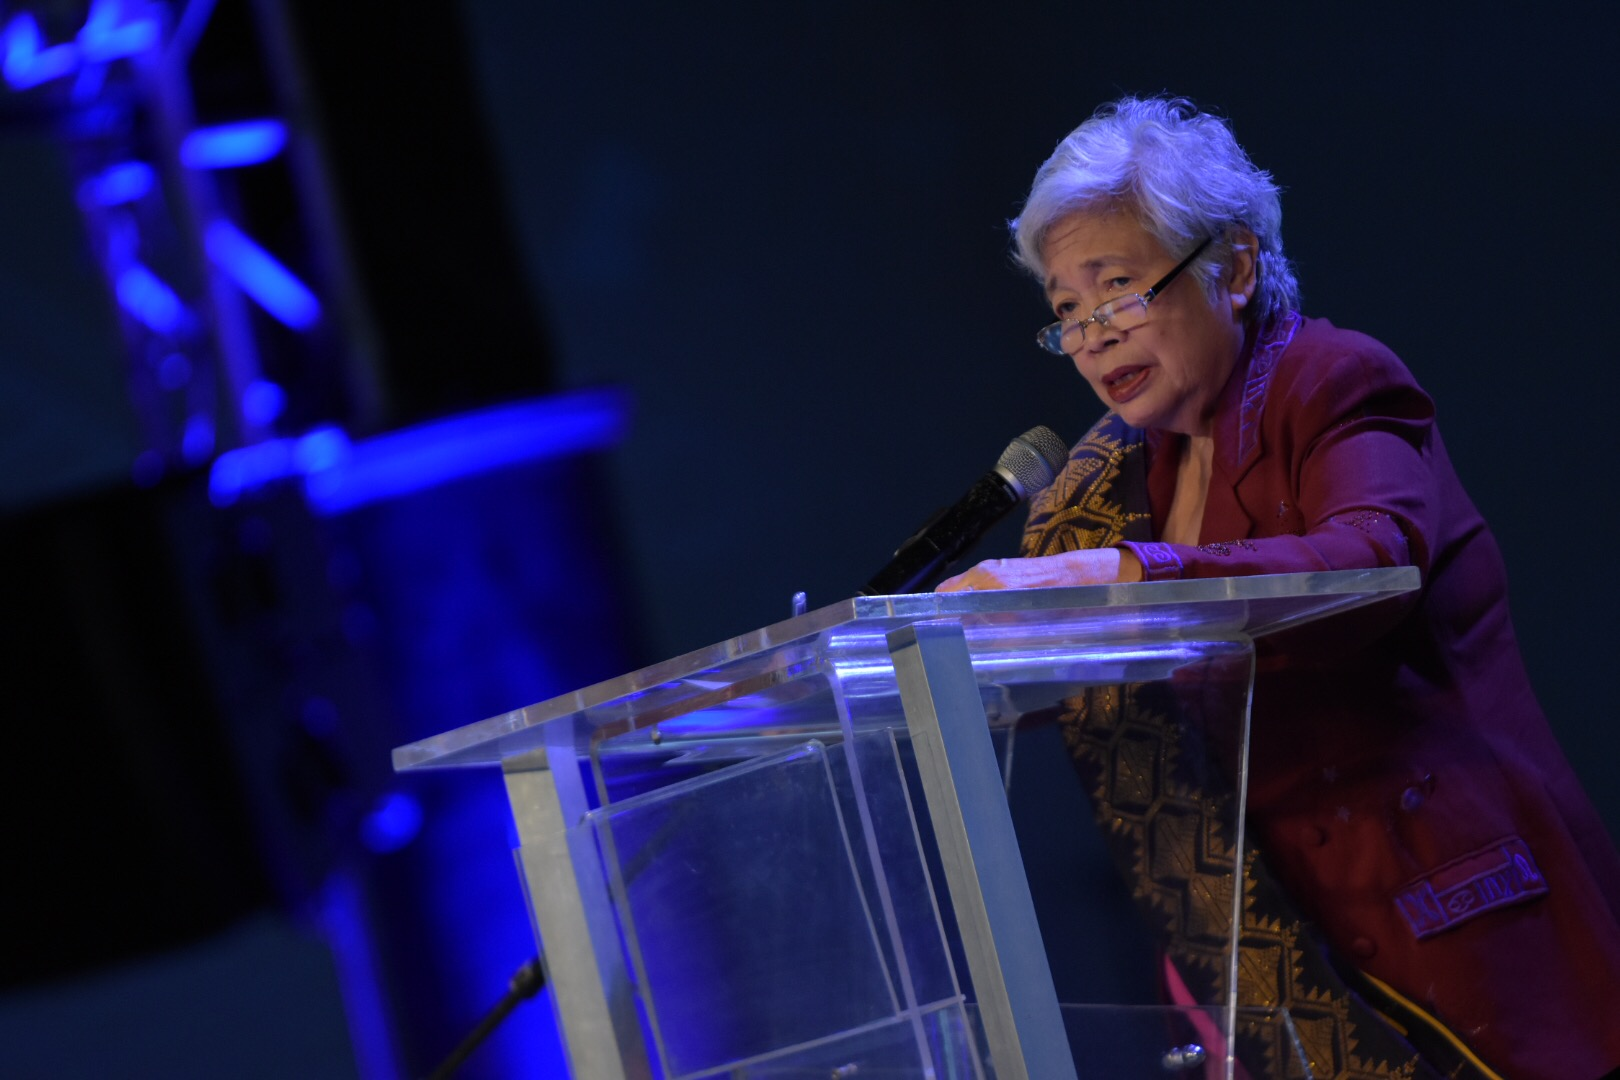 TRUTH IN TEACHING. Education Secretary Leonor Briones talks about truth-telling during Rappler's forum on Tuesday, November 28. Photo by Leanne Jazul/Rappler